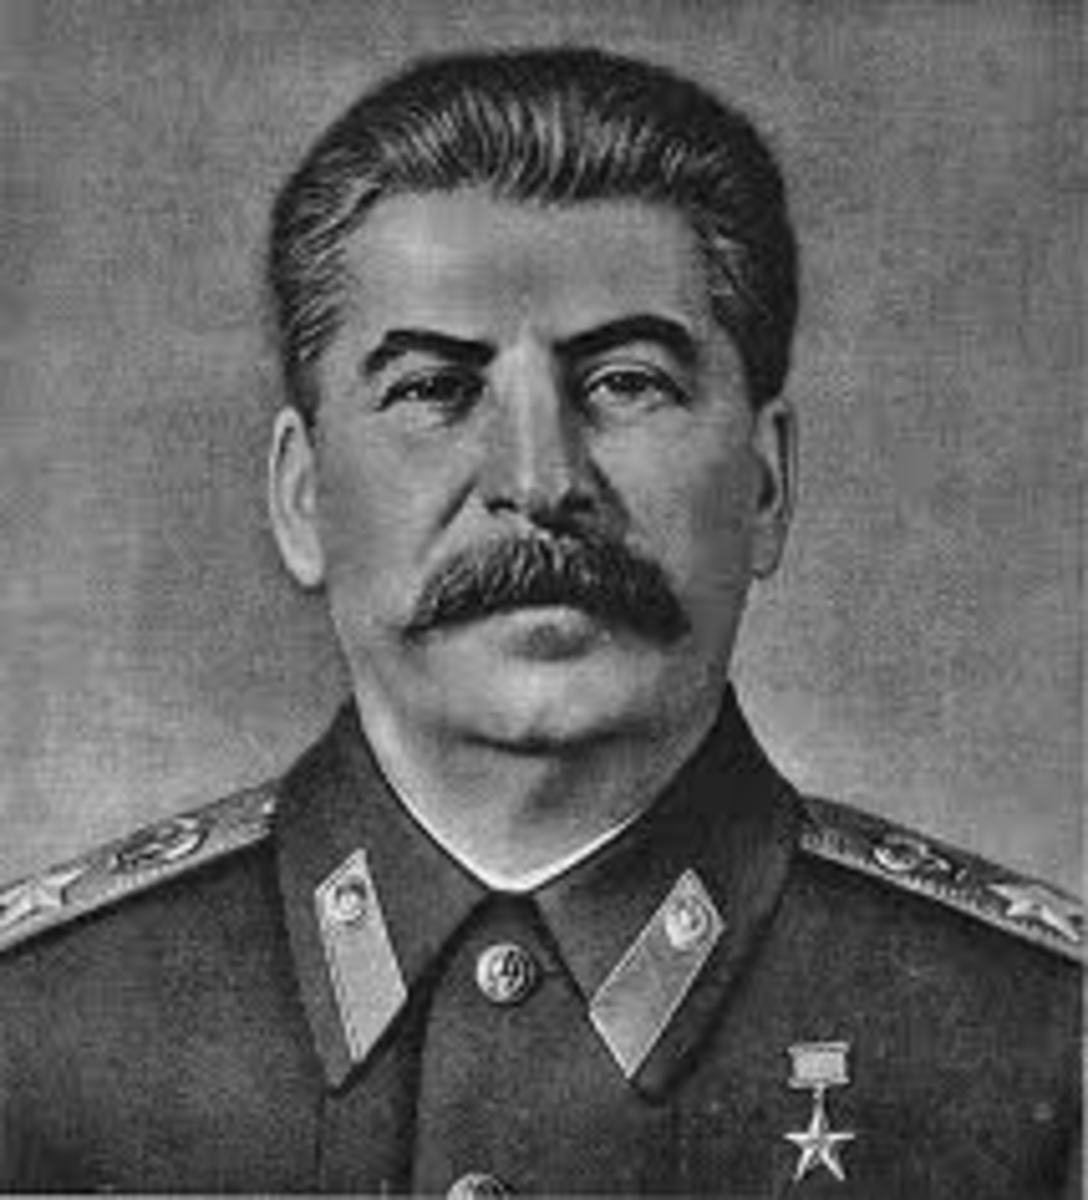 joseph stalin ruled the soviet union Back to: soviet west soviet union is a constitutionally socialist state, governed by joseph stalin it is a single-party state ruled by the communist party it was.